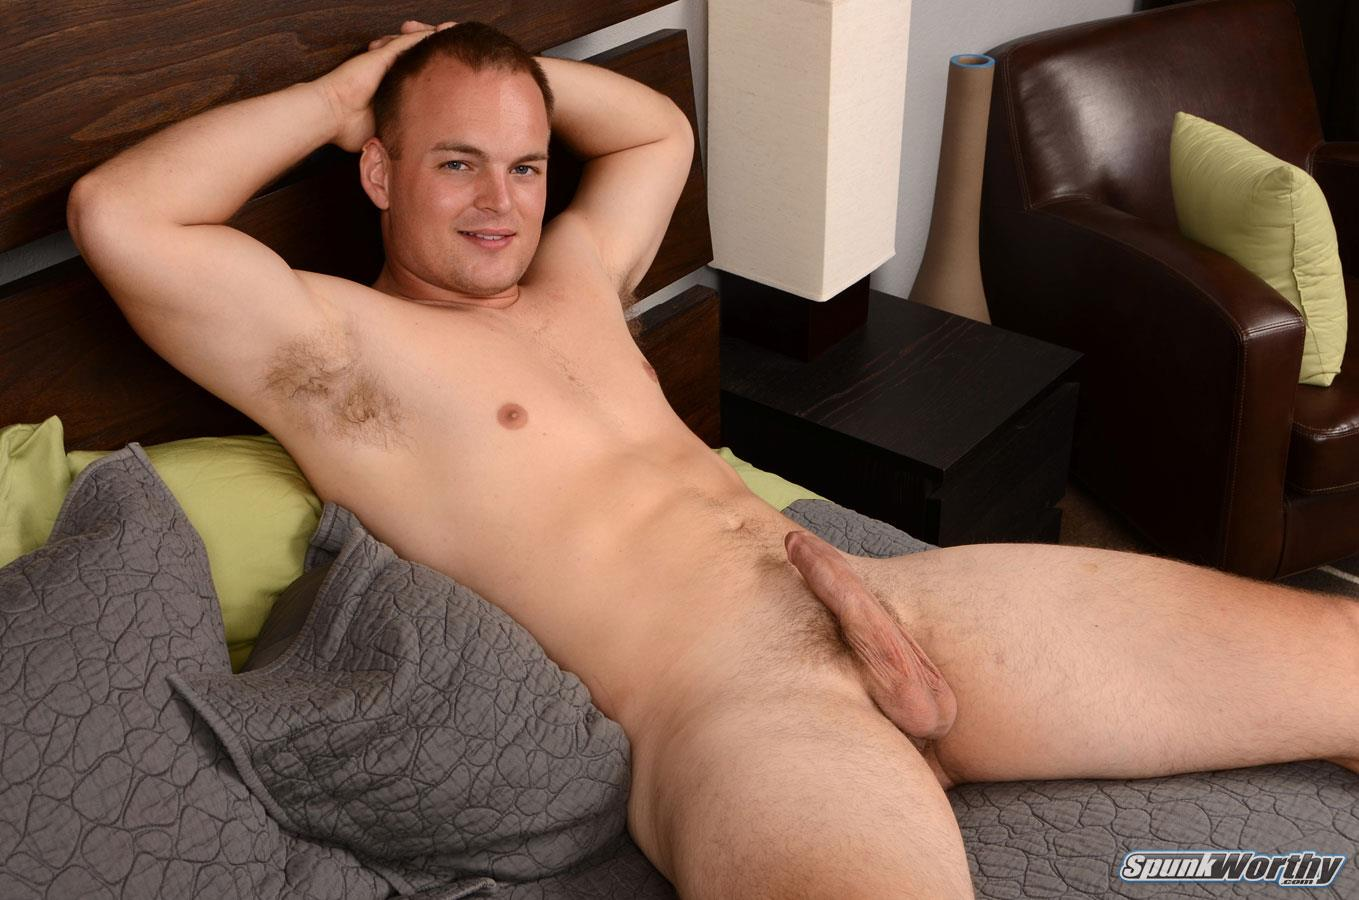 SpunkWorthy-Cole-Beefy-Young-Marine-Jerking-Off-His-Big-Cock-Masturbation-Amateur-Gay-Porn-07 Amateur Beefy Straight Young Marine Jerking Off